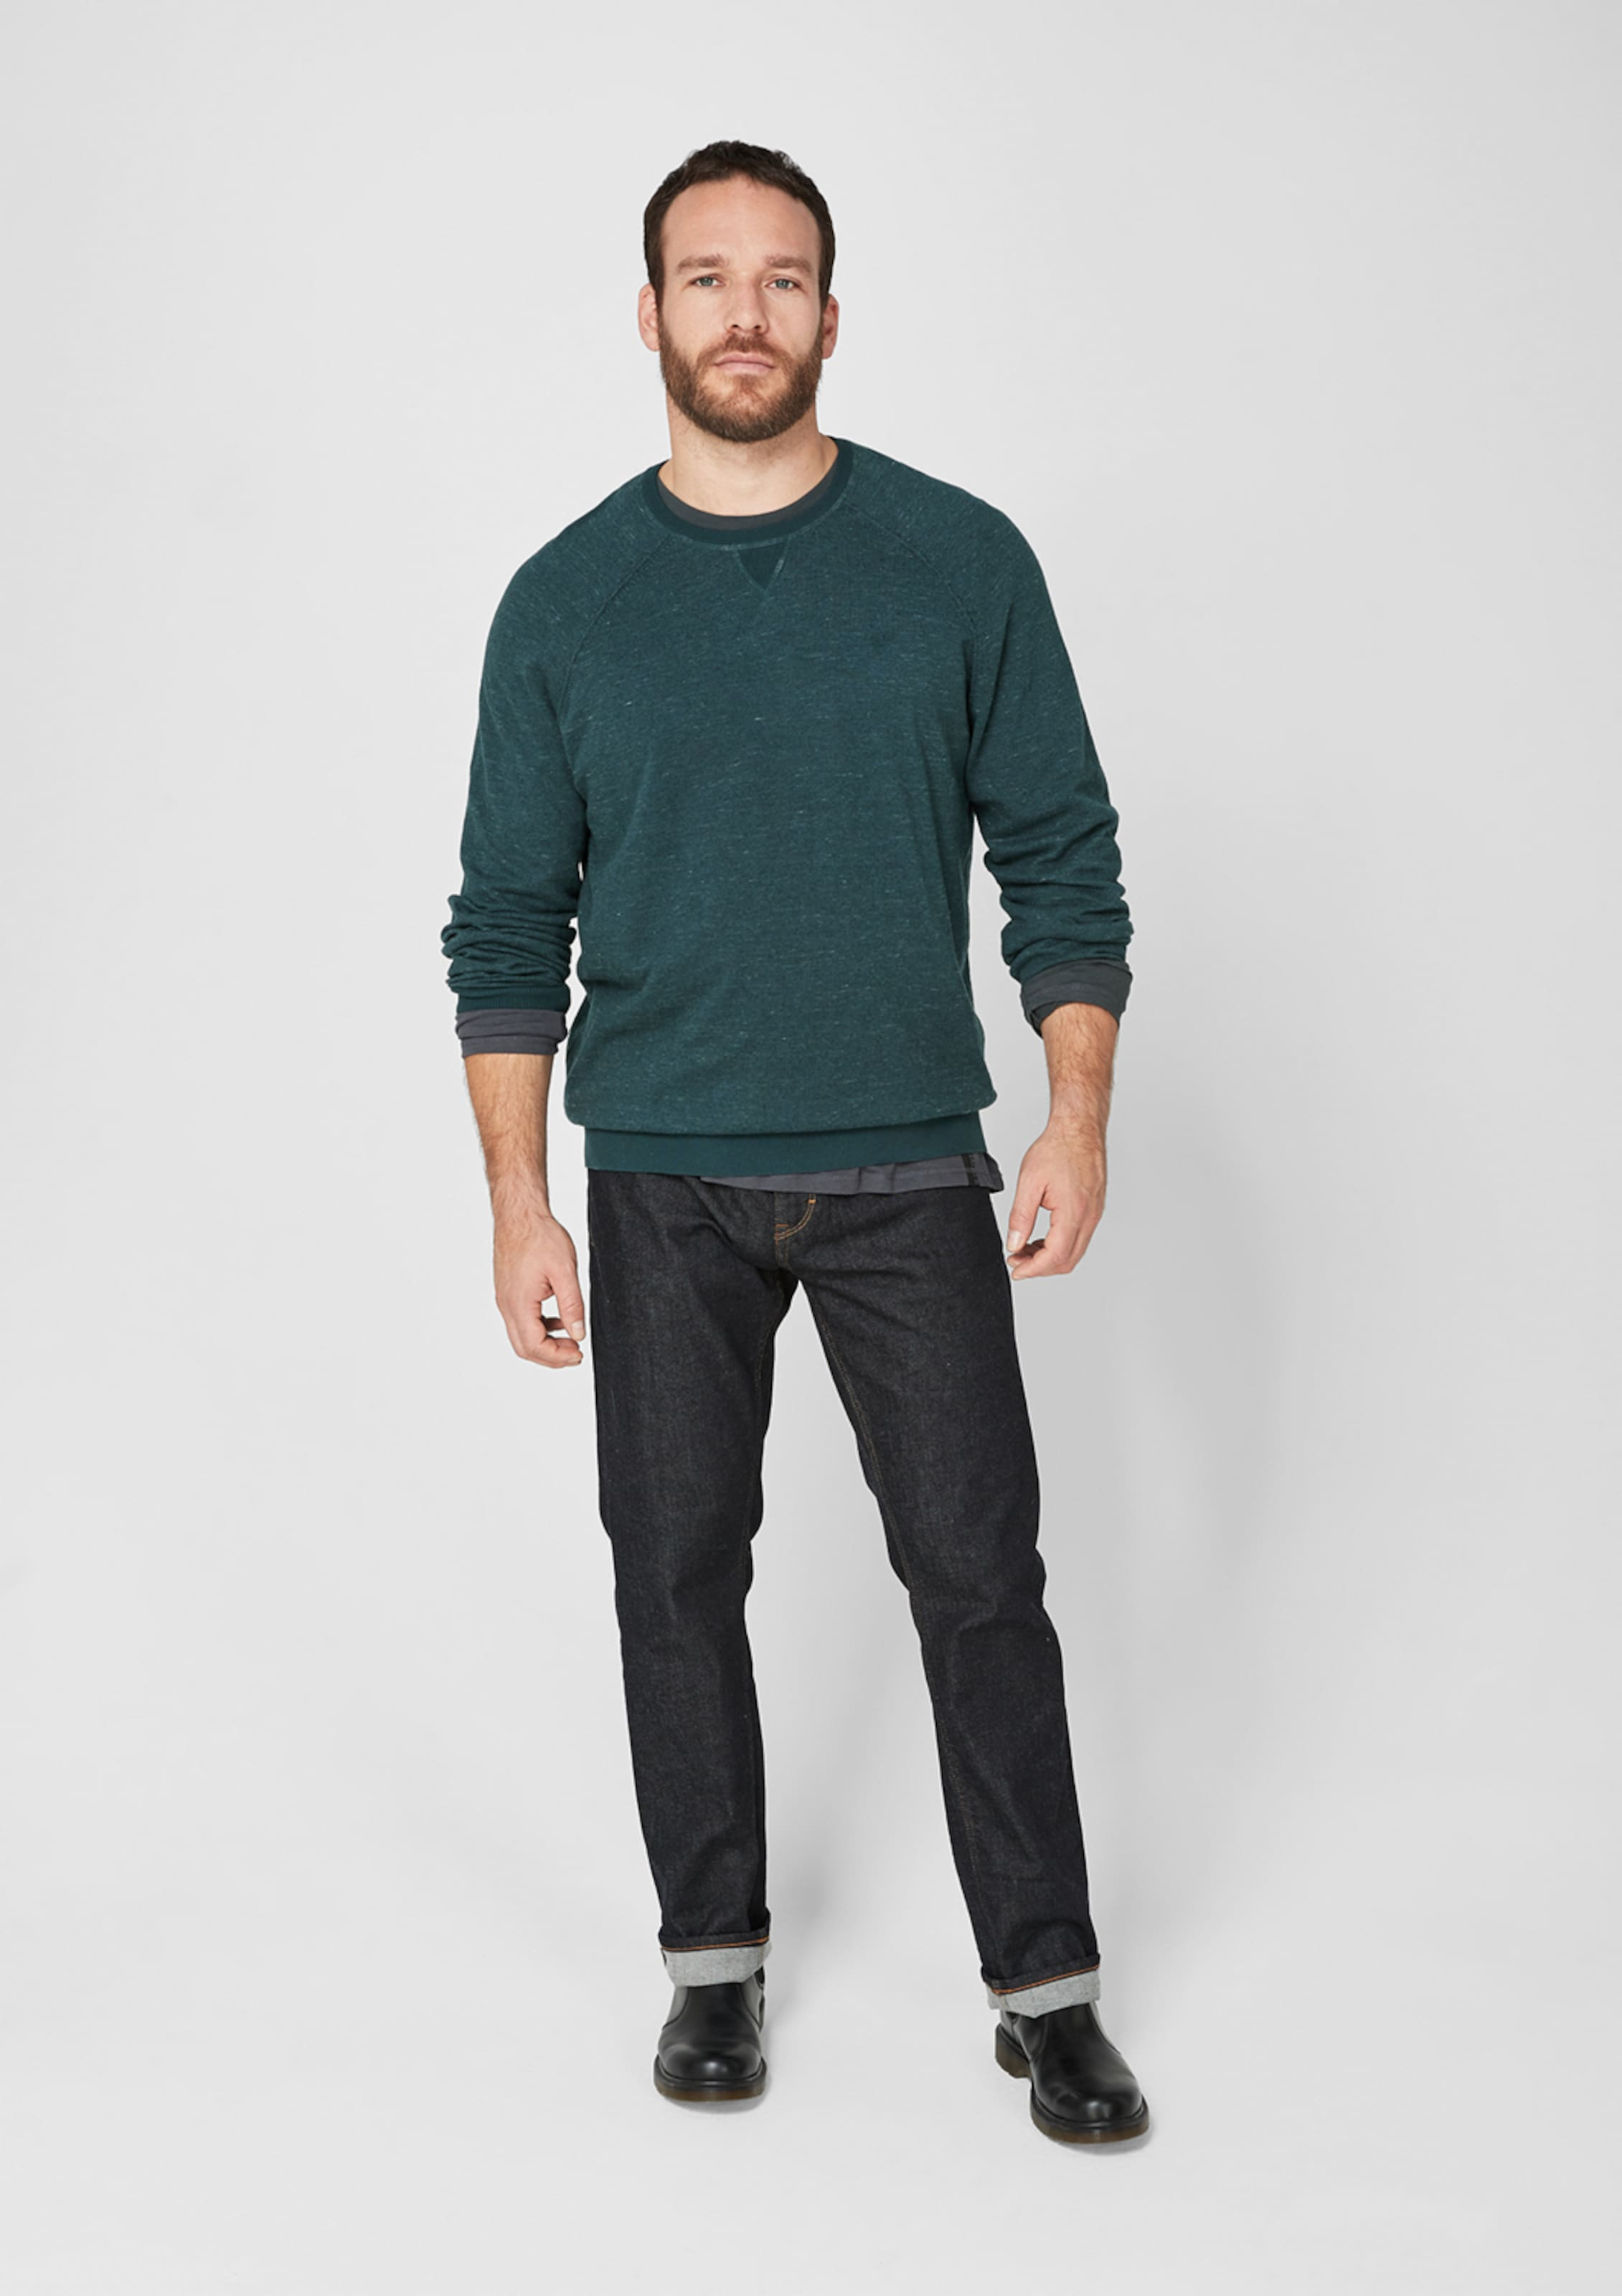 In Blaumeliert oliver S S Pullover oliver 29EHDeWIY